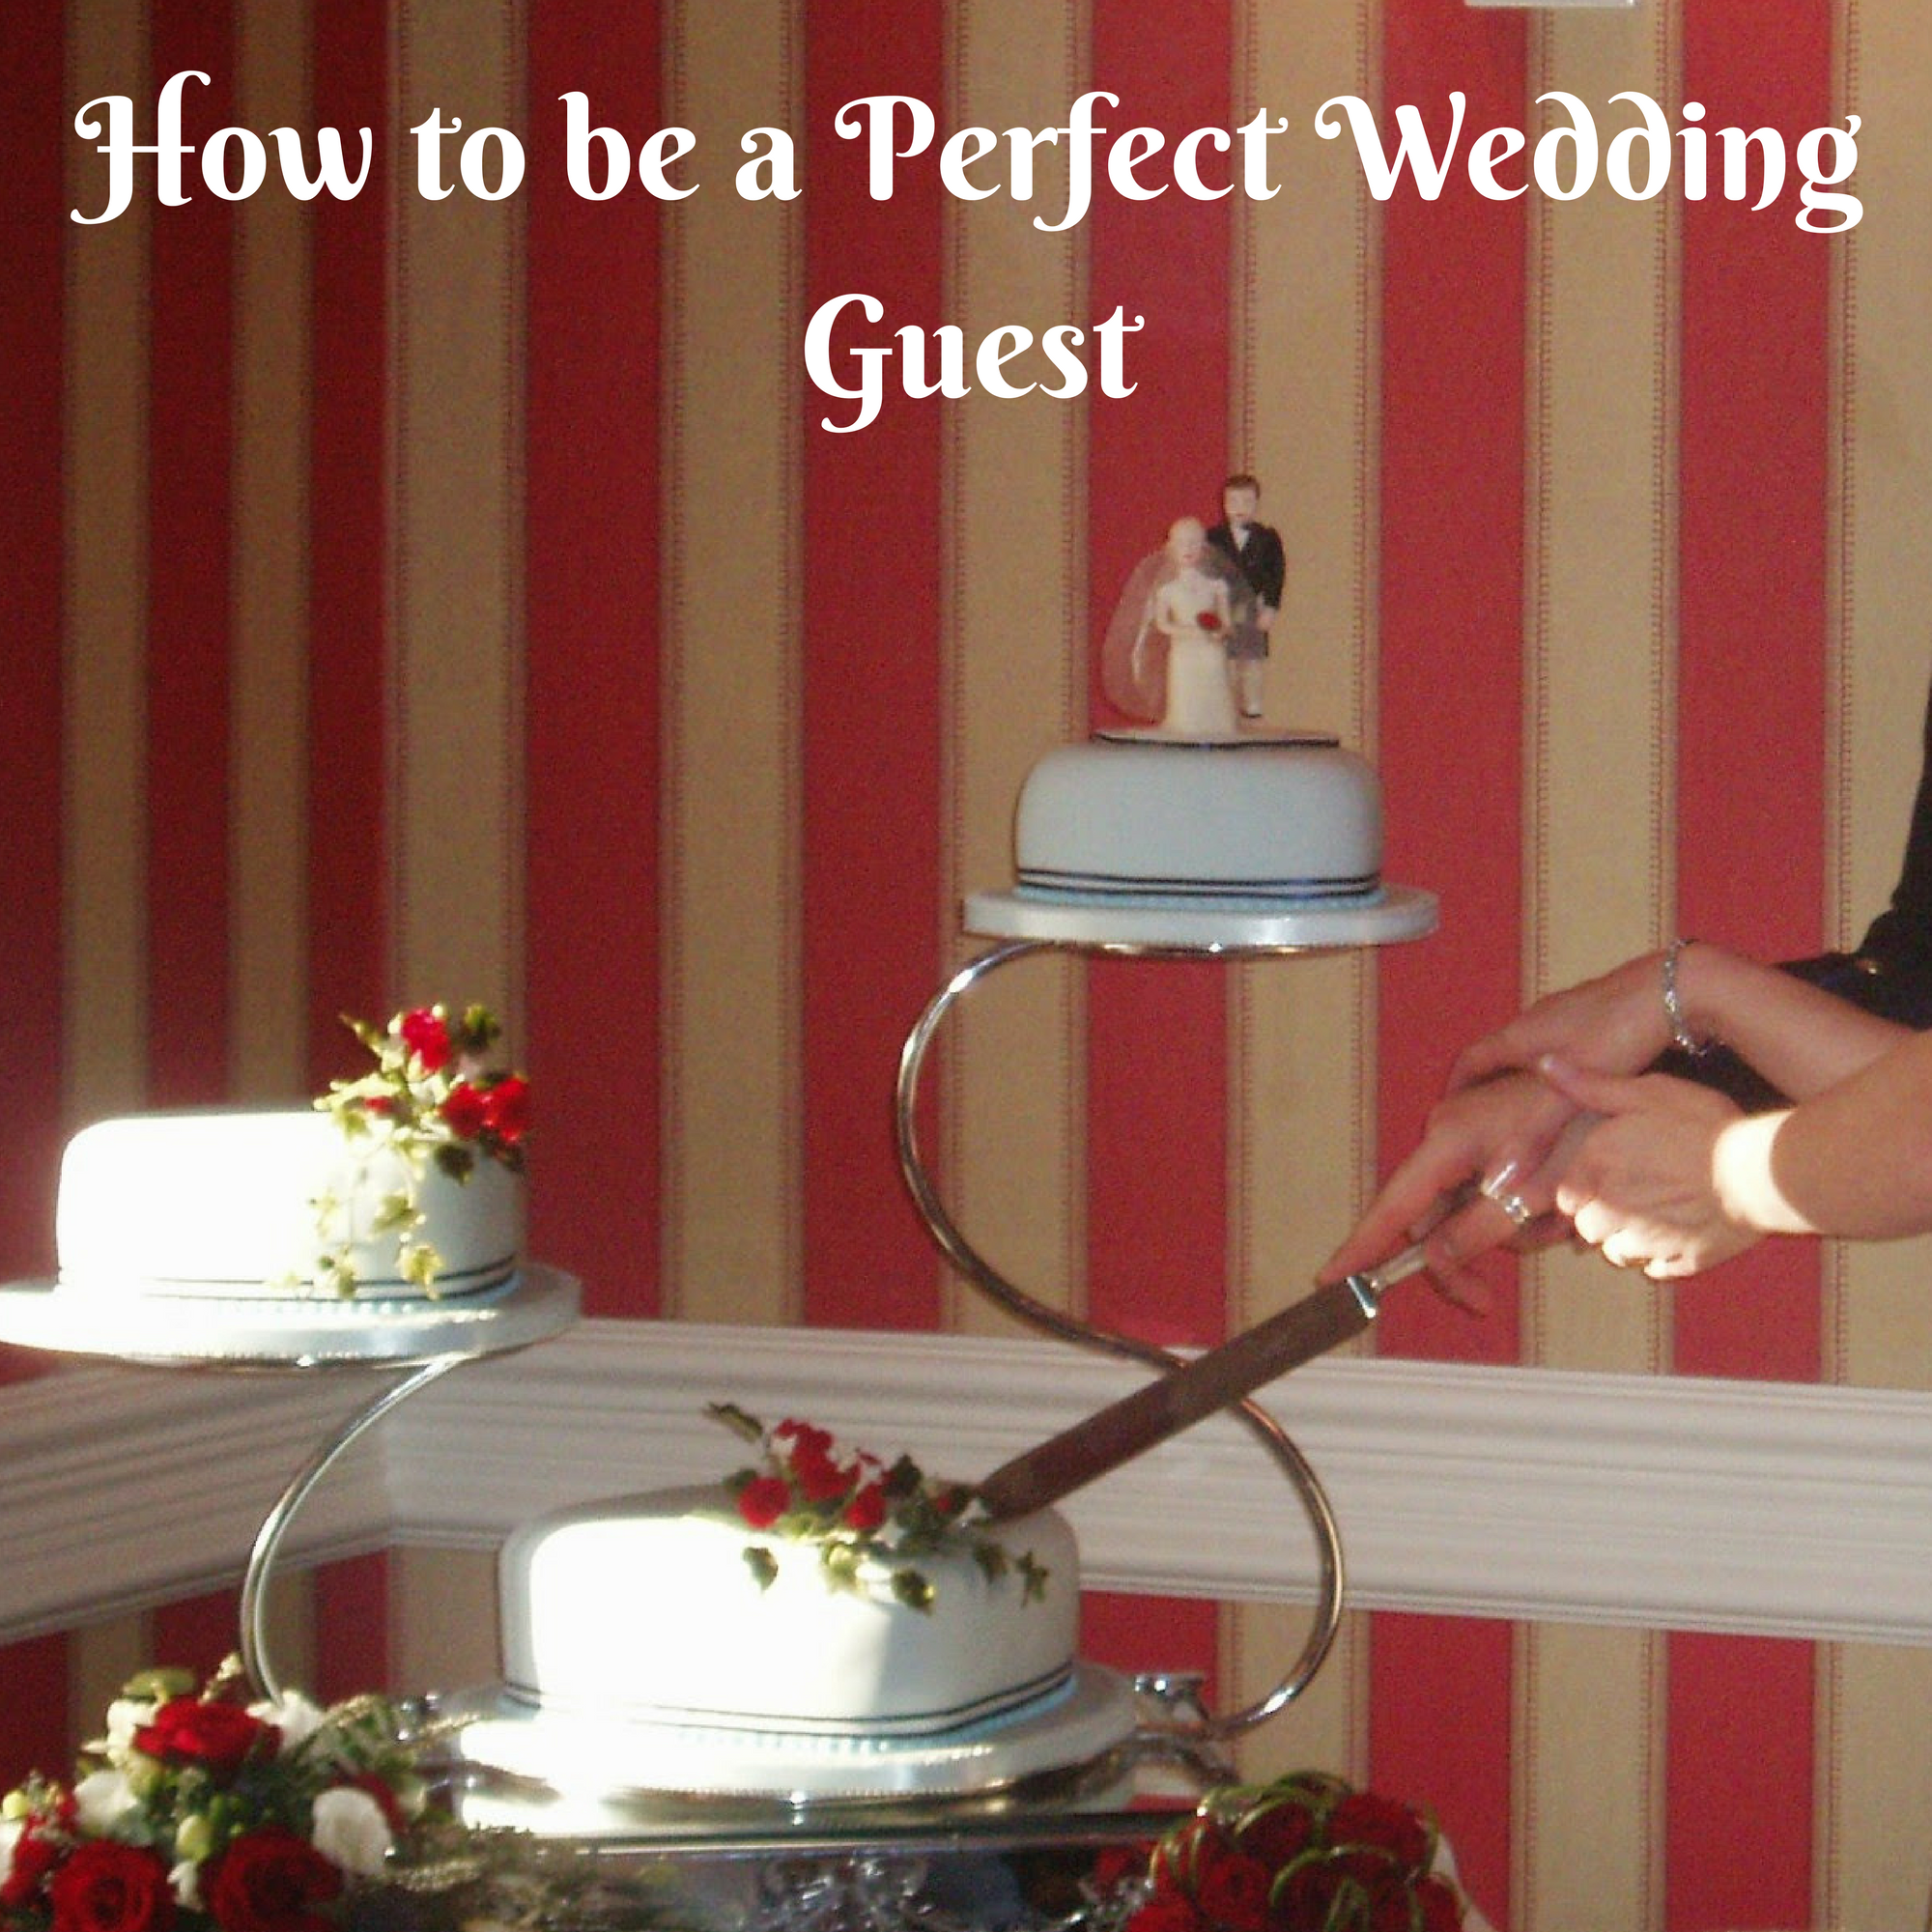 How to be a Perfect Wedding Guest